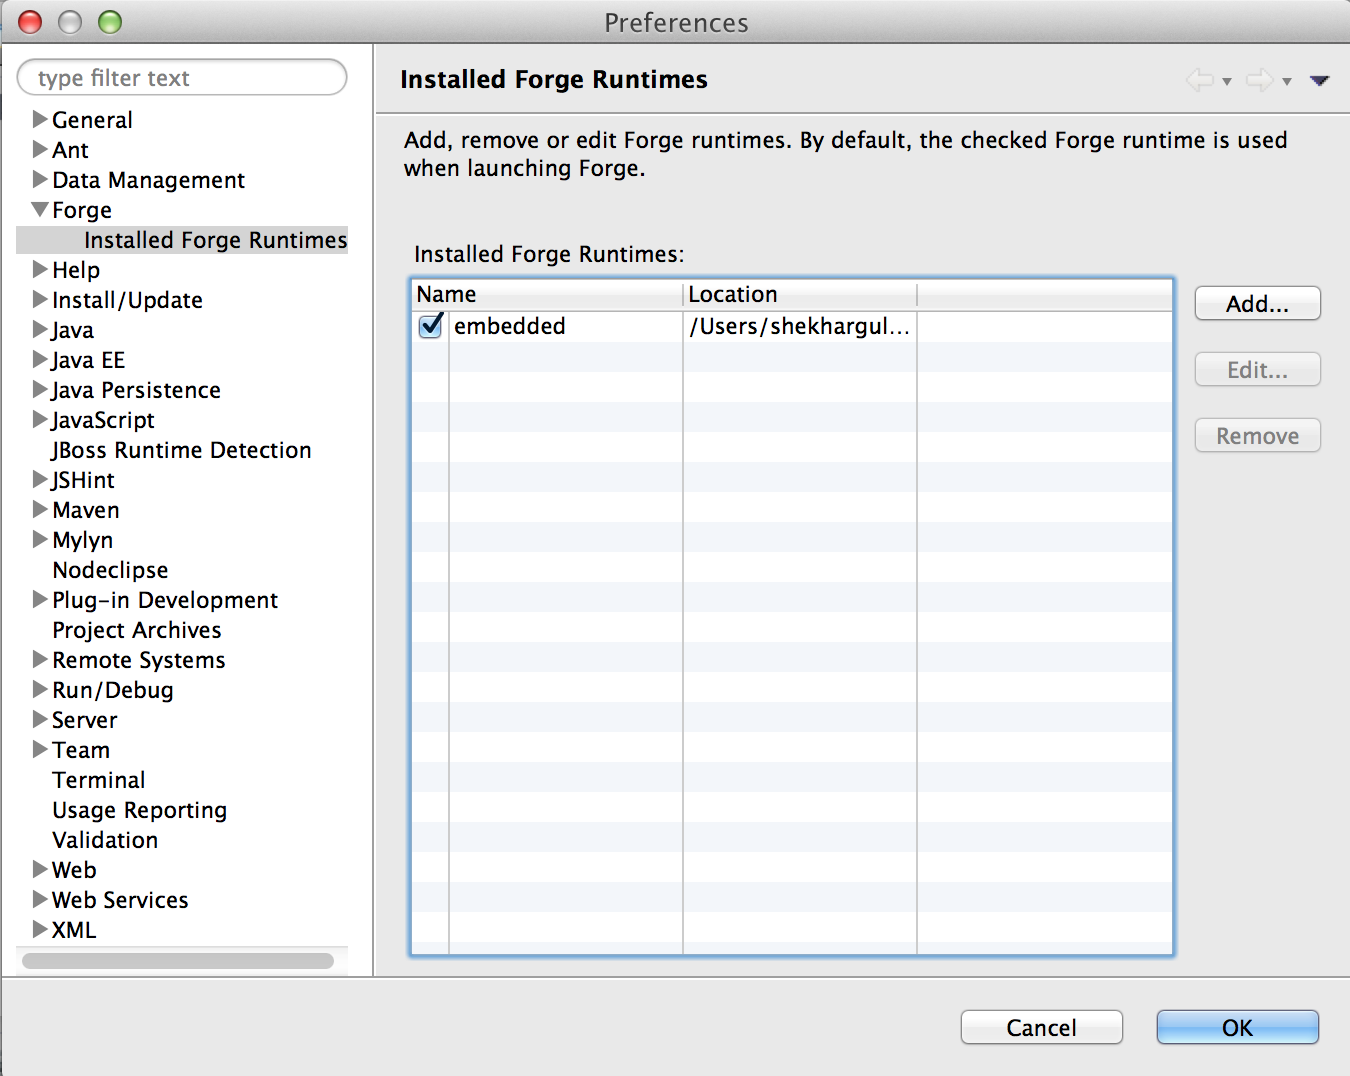 Installed Forge Runtimes